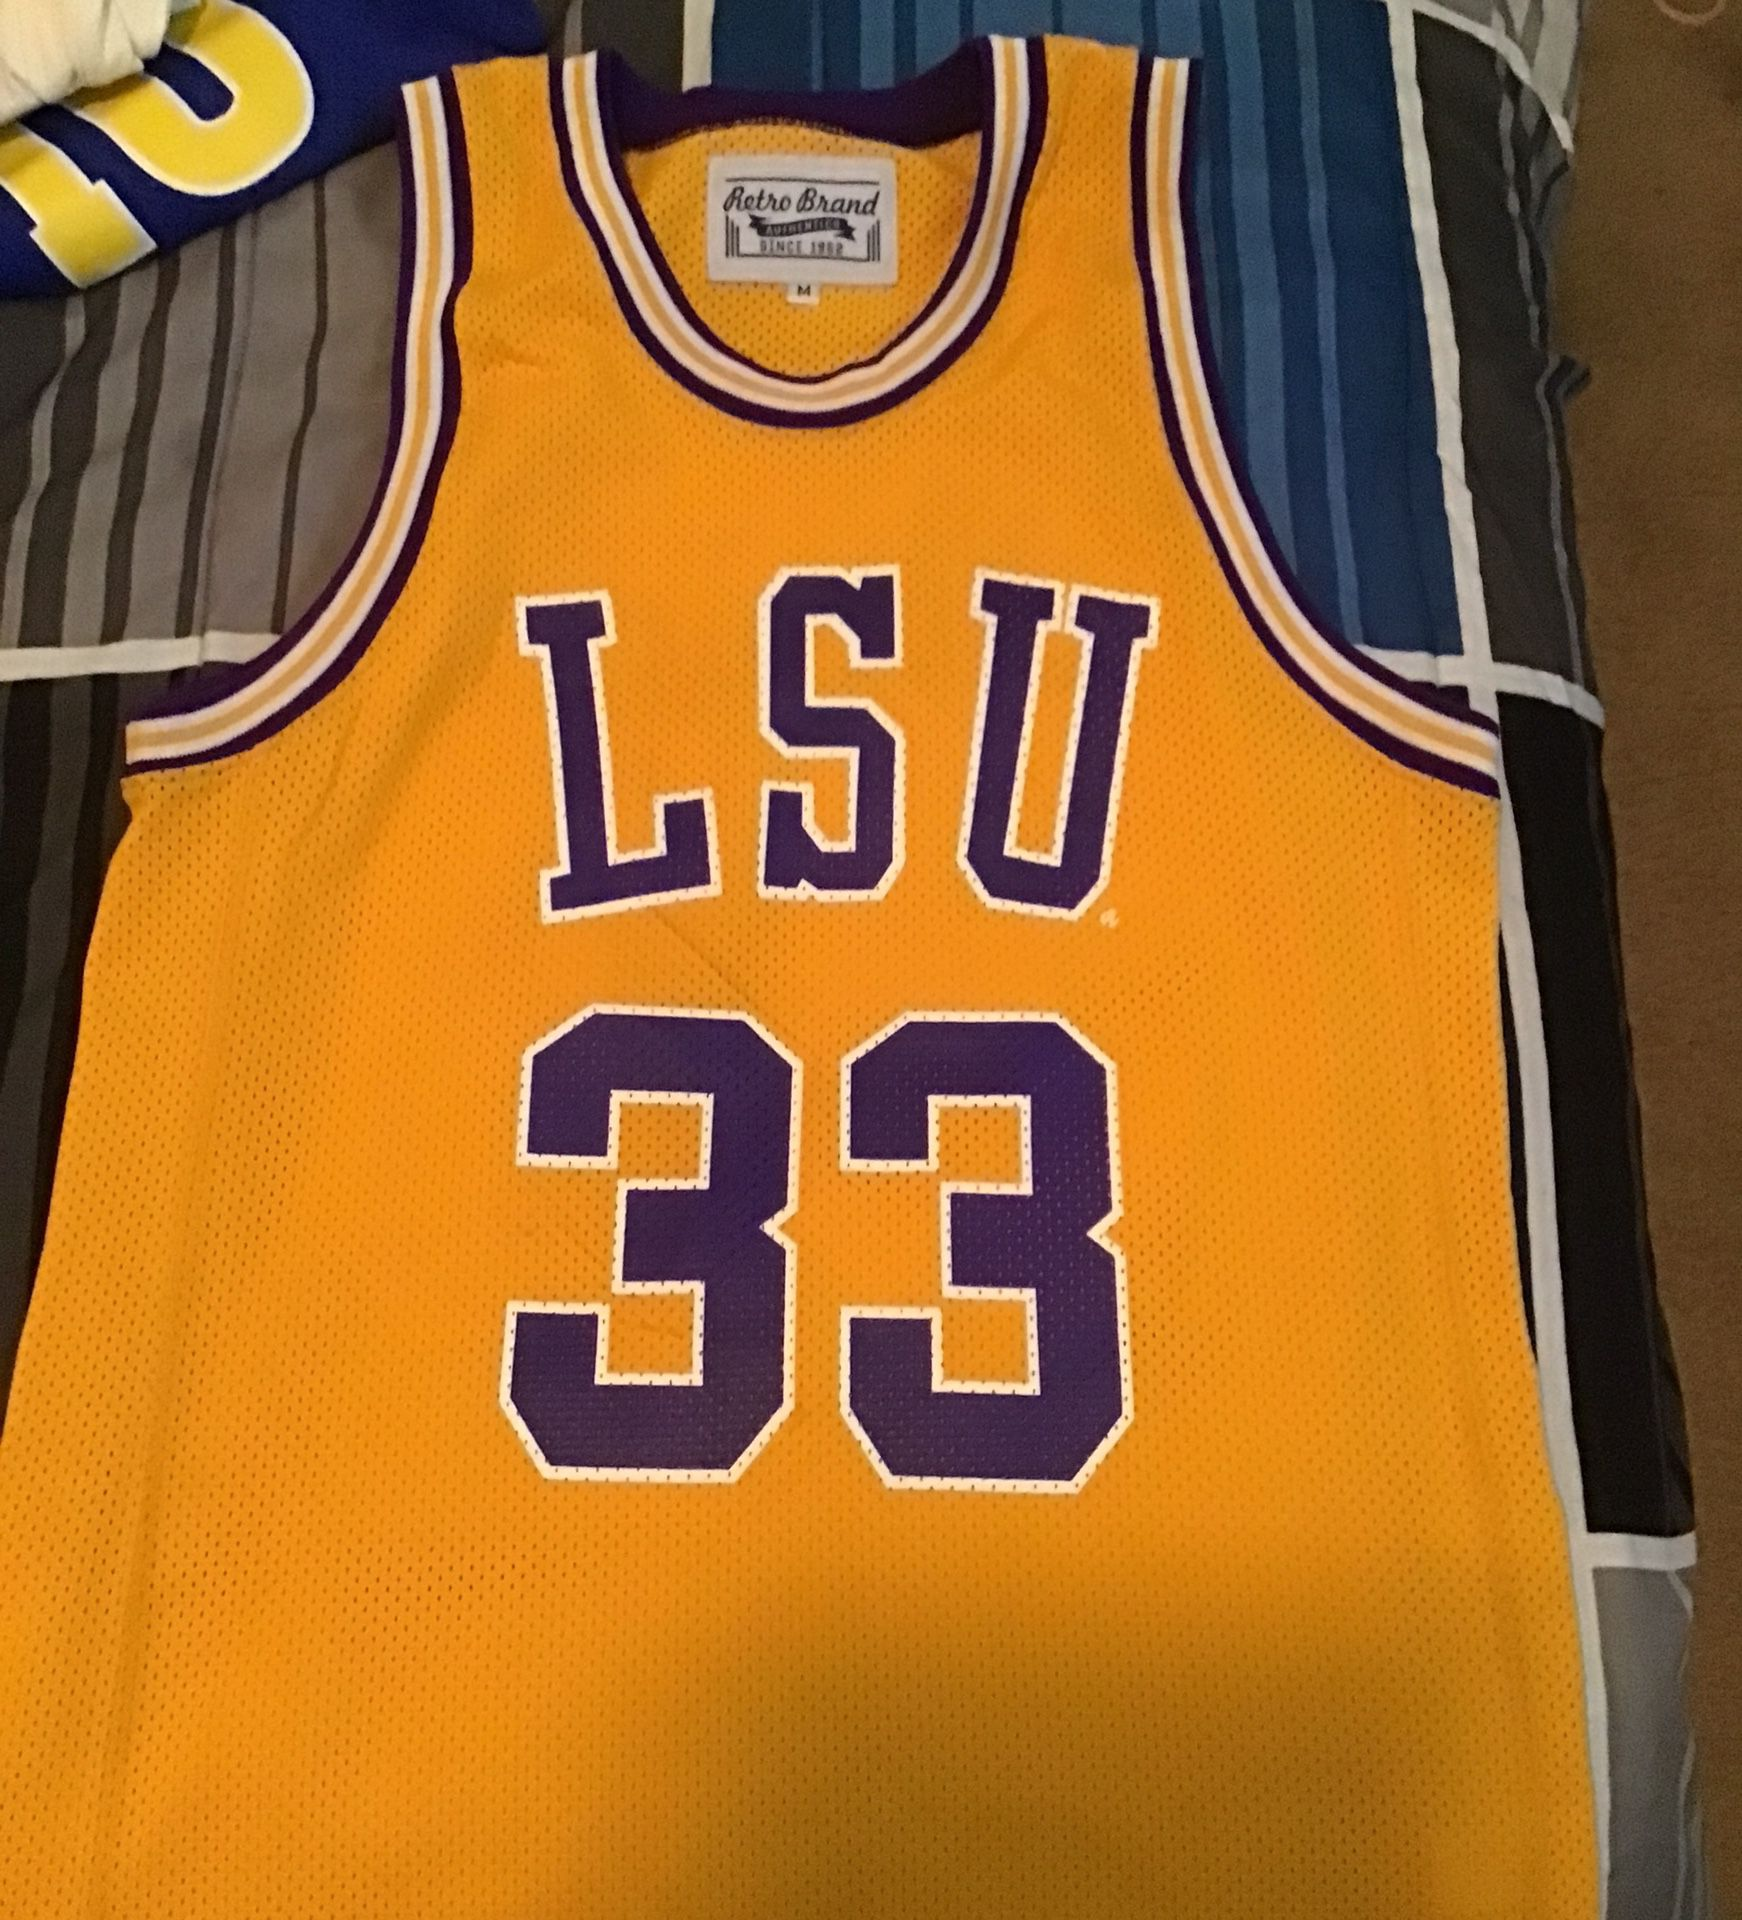 LSU Shaquille O'Neal Jersey.... Retro brand Authentic